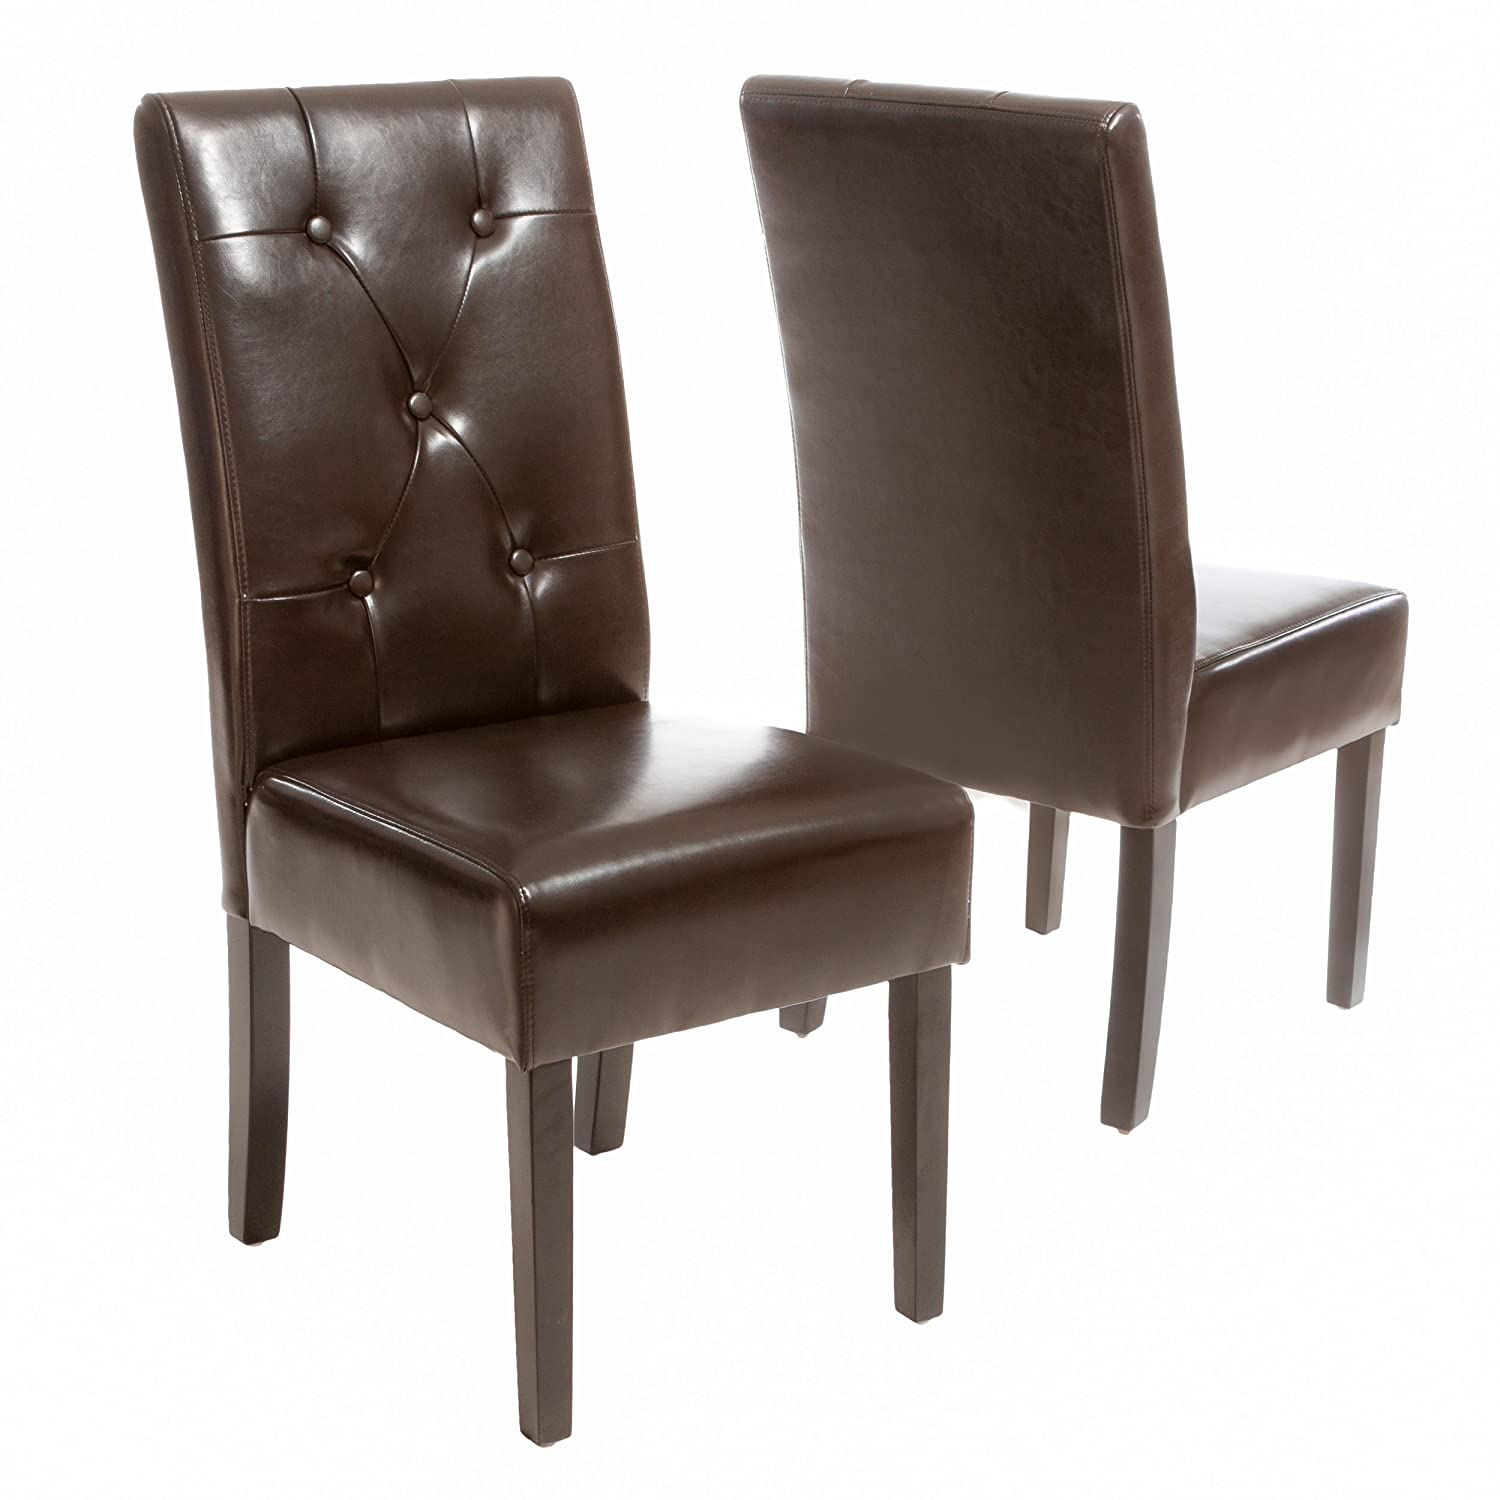 Best Selling Tristan Bonded Leather Dining Chair, Brown, Set of 2 best selling high quality organic spirulina extract 60